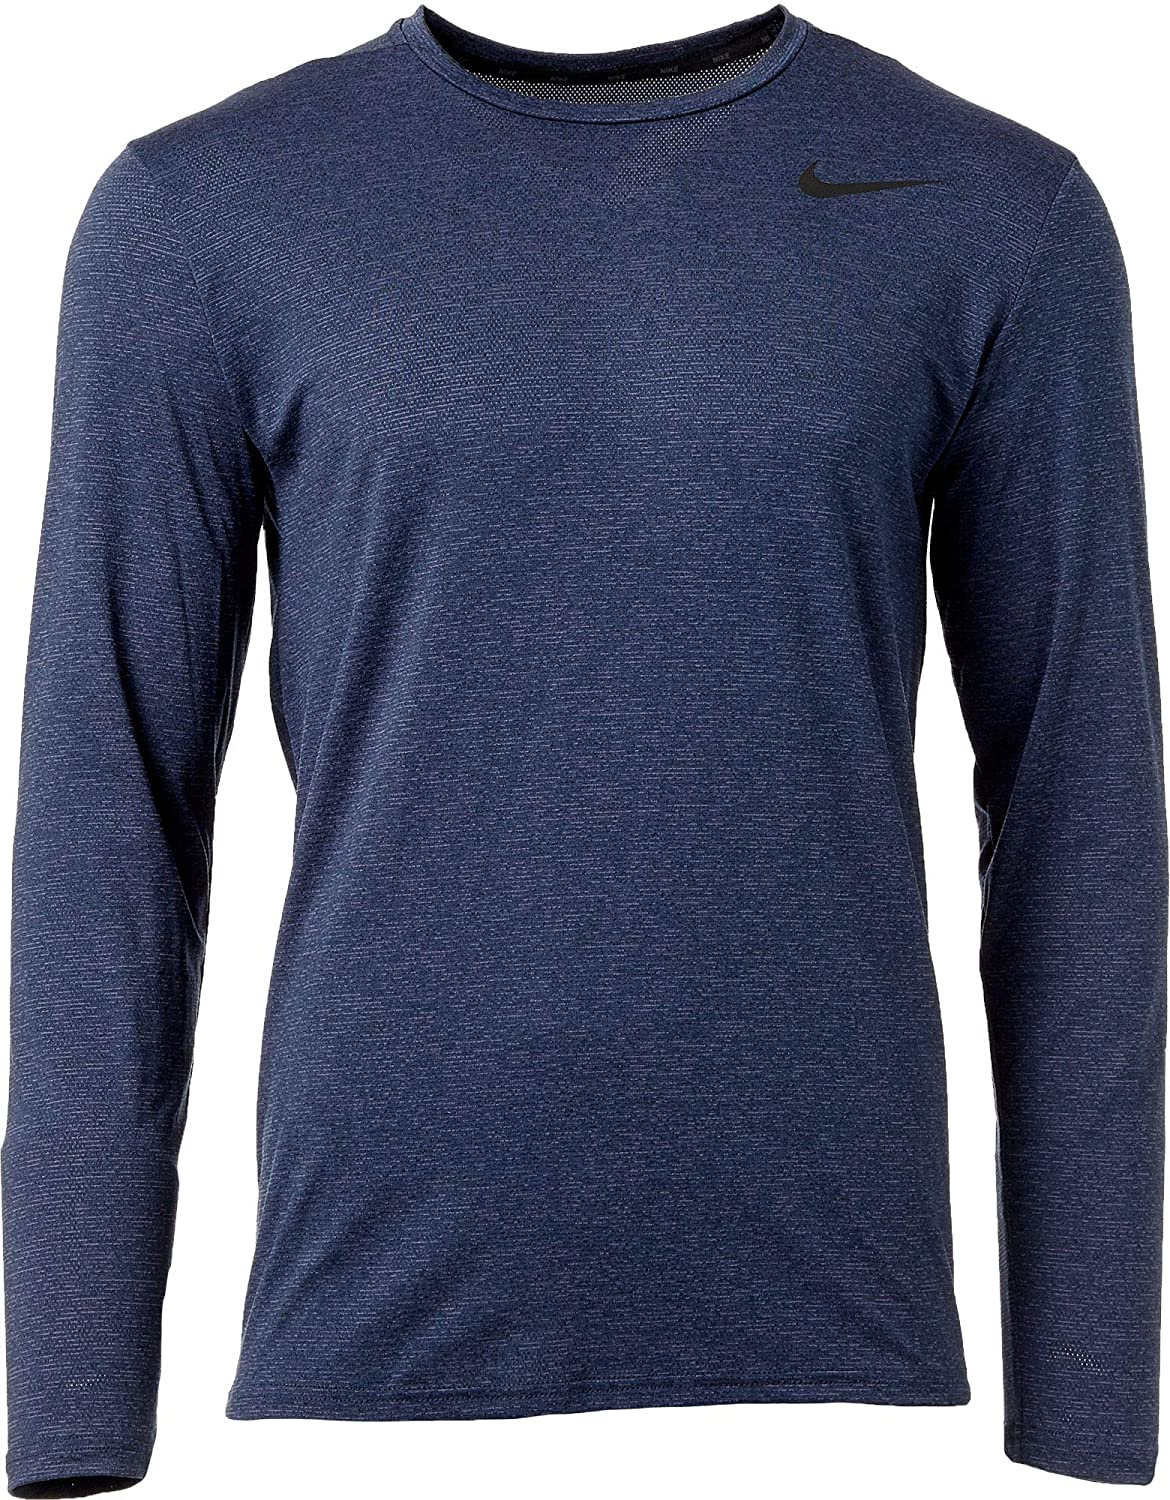 Nike Mens Dry Static Long Sleeve Training Top